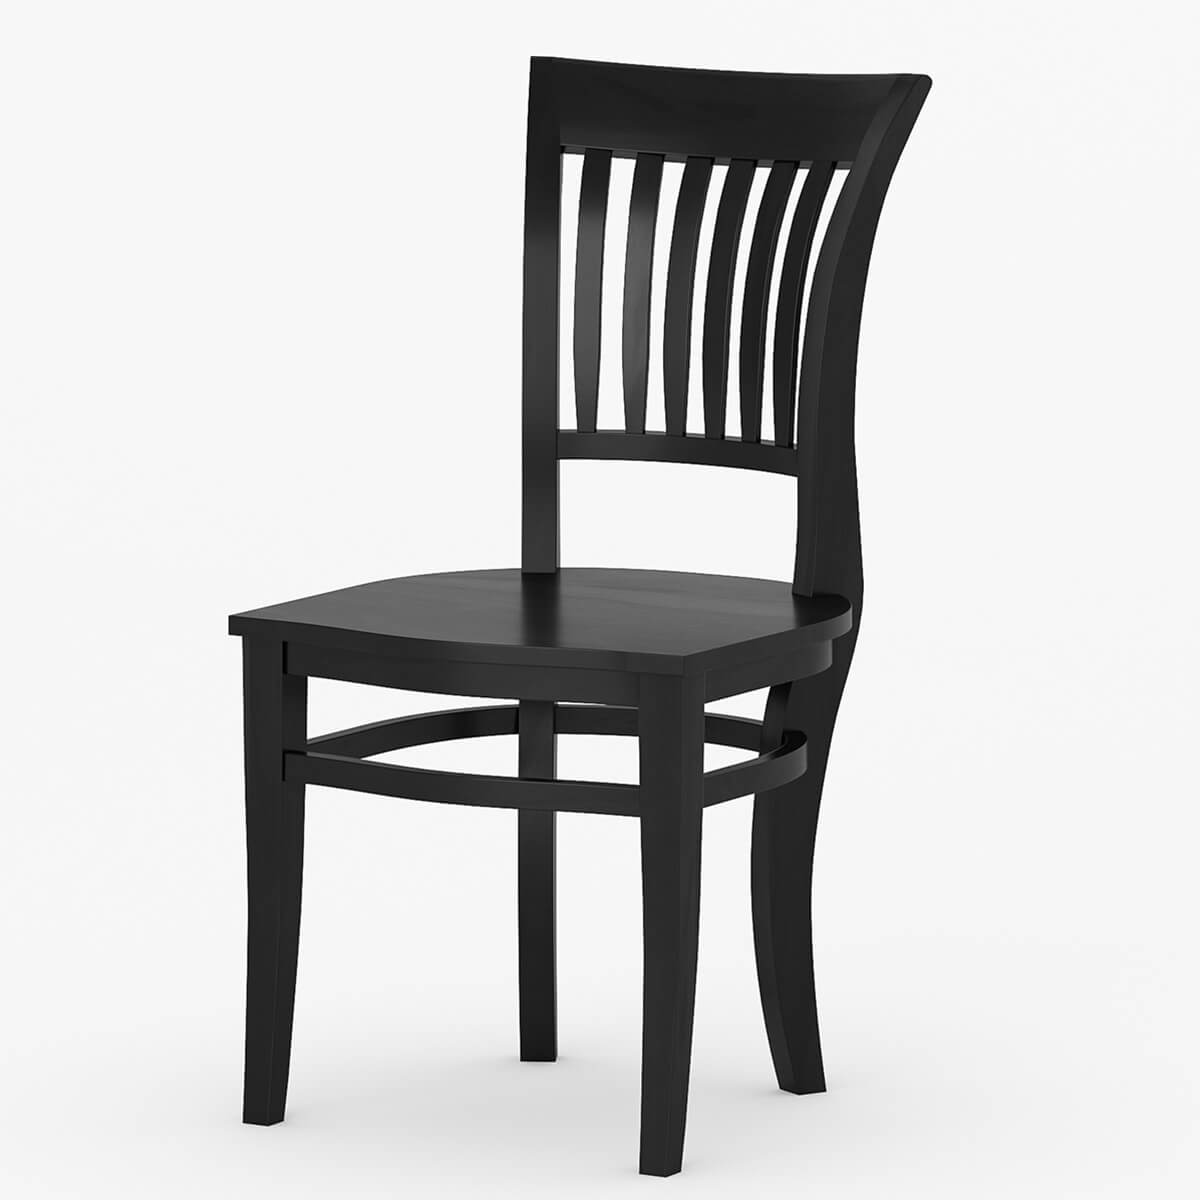 Sierra nevada solid wood kitchen side dining chair furniture for Kitchen dining furniture